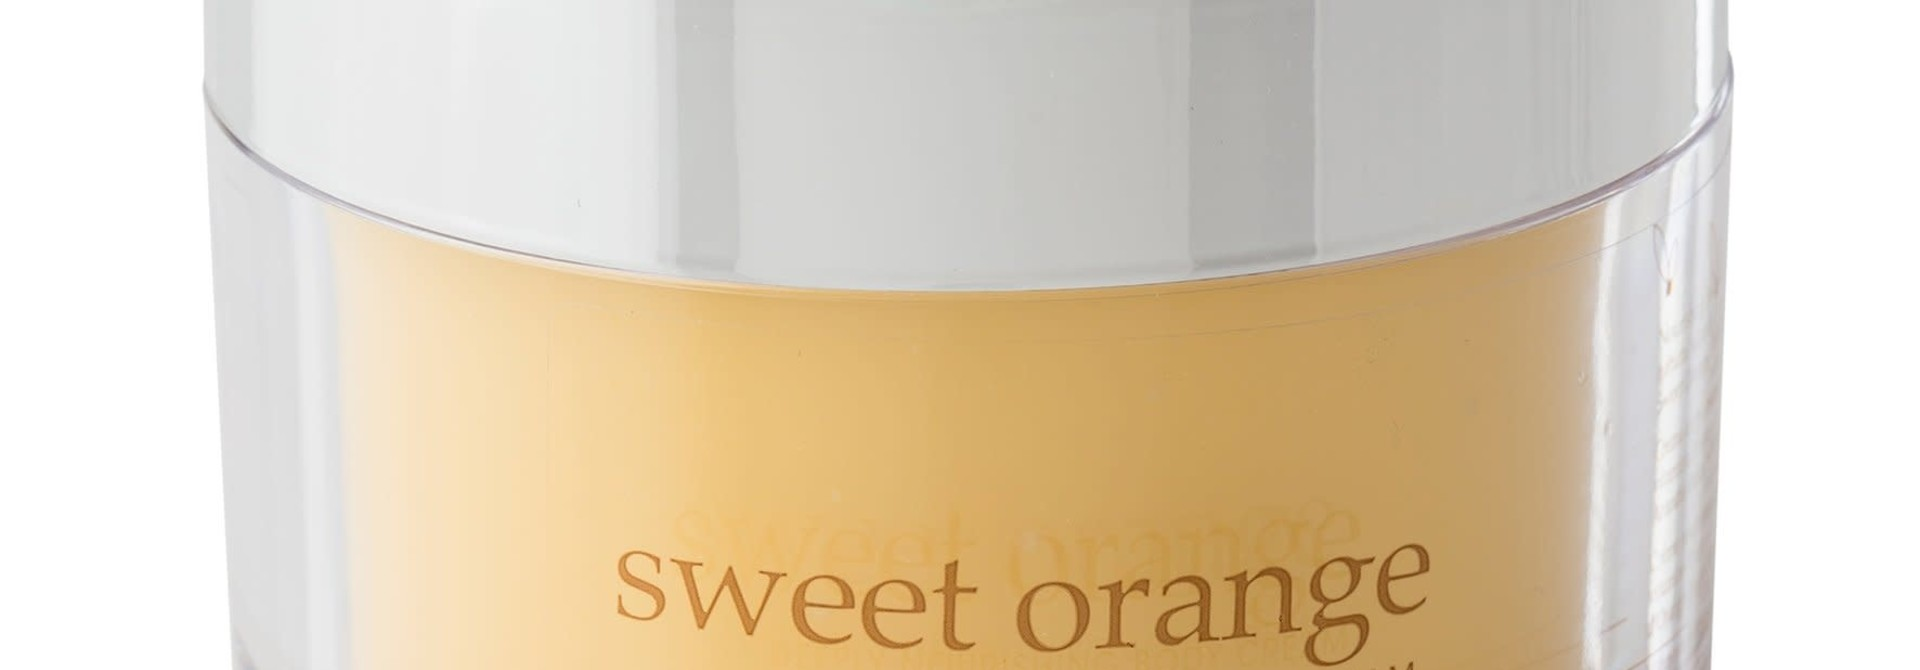 Sweet Orange Body Cream - Sinaasappel Lichaamscrème